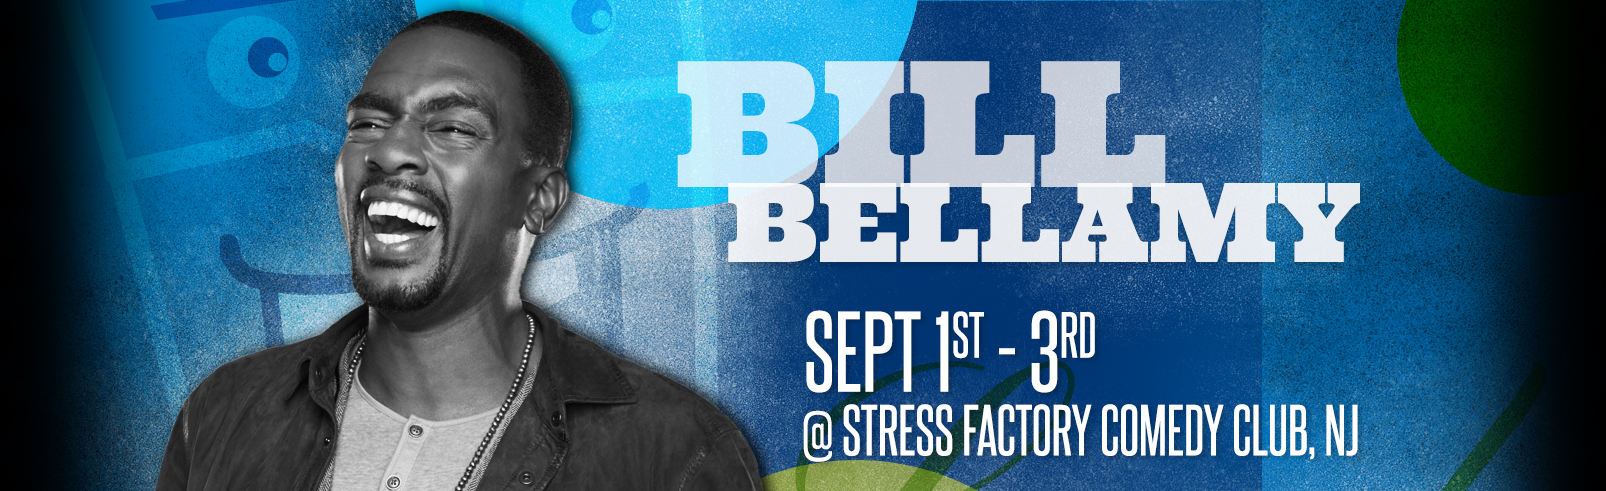 Bill Bellamy @ Stress Factory Comedy Club